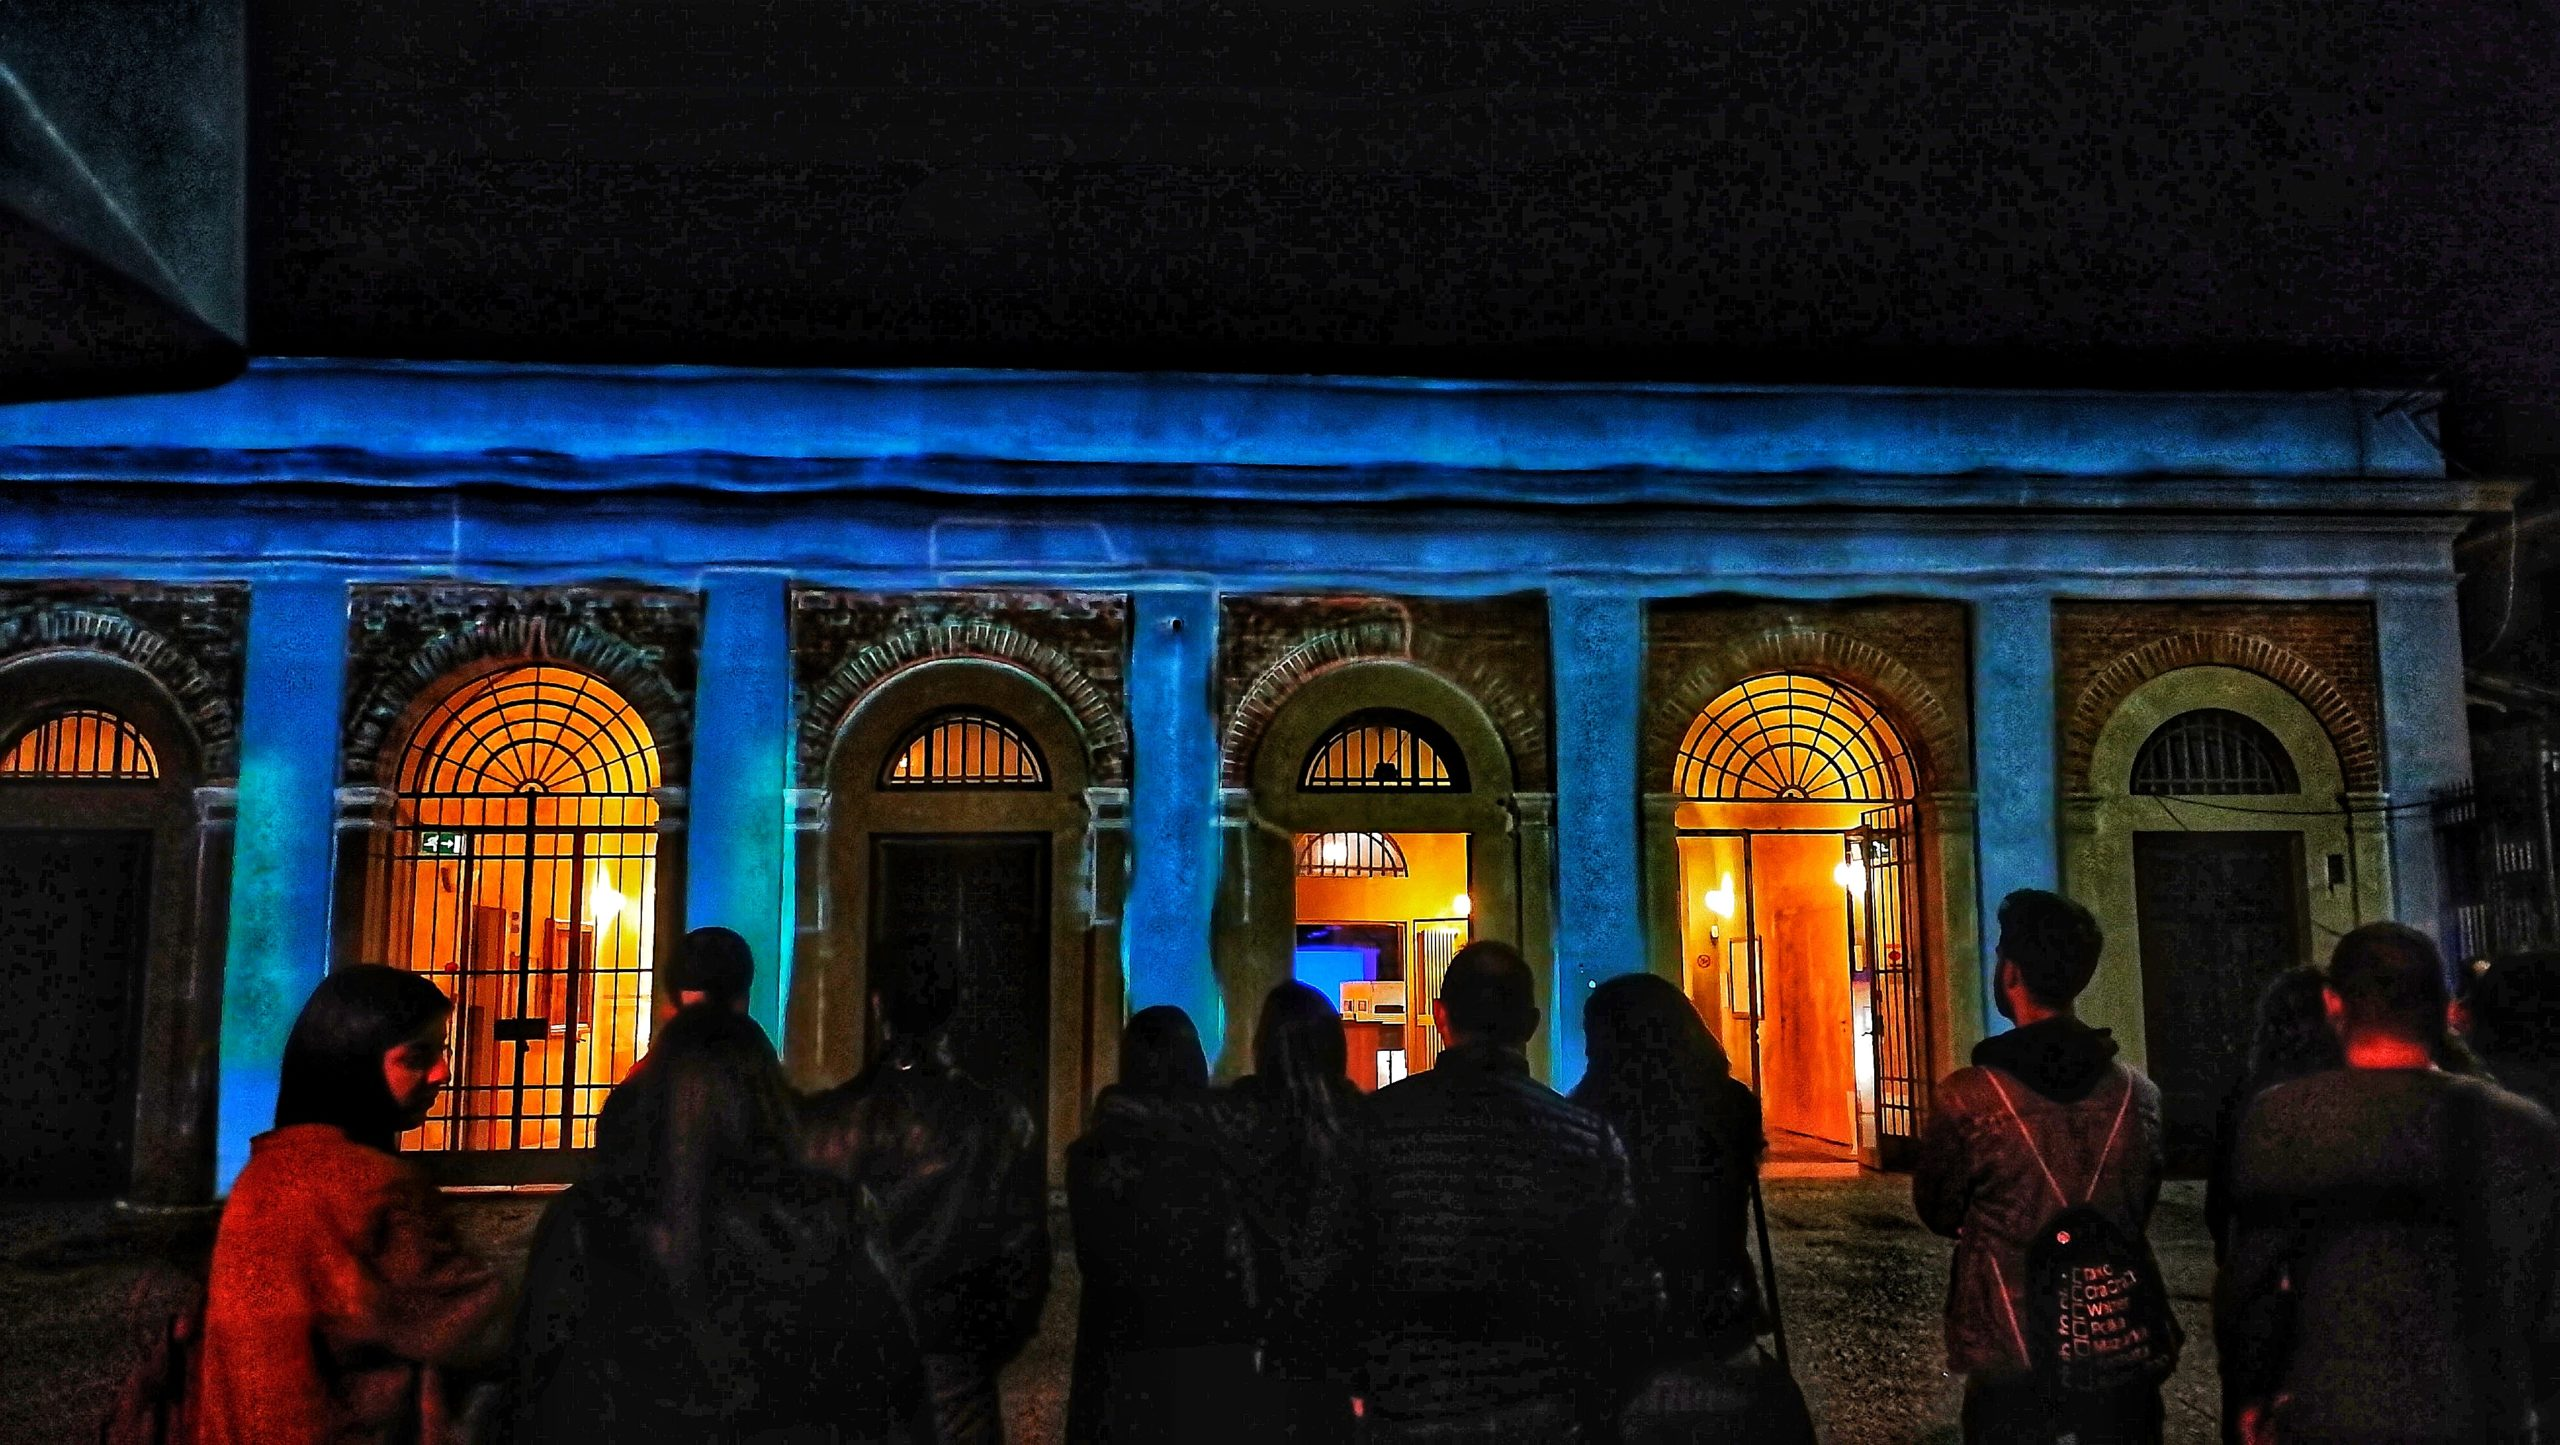 projection mapping in Pisa by Sinapsi videomapping lab